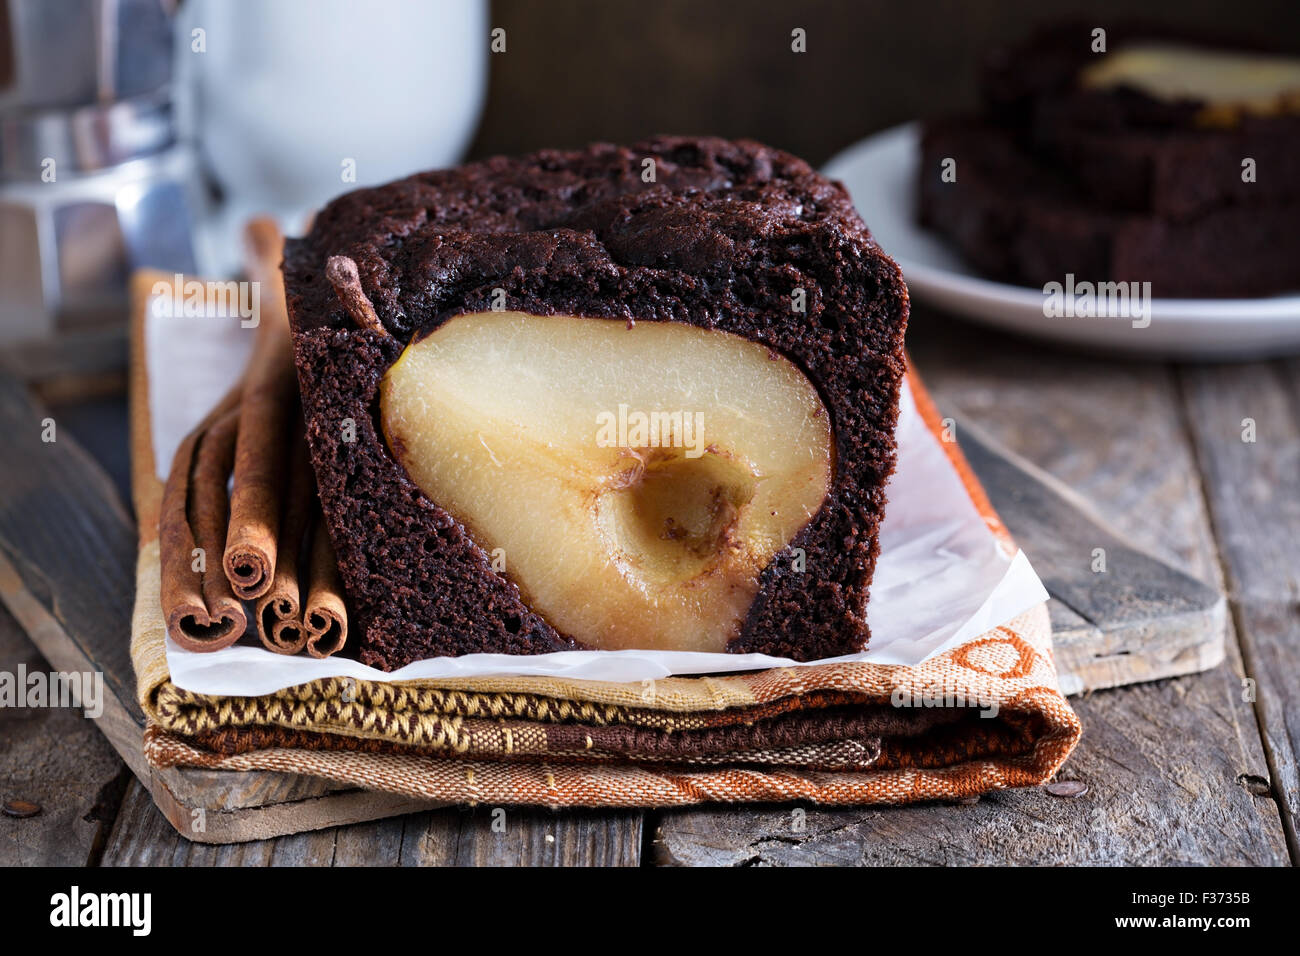 Chocolate loaf cake with whole pears baked inside - Stock Image